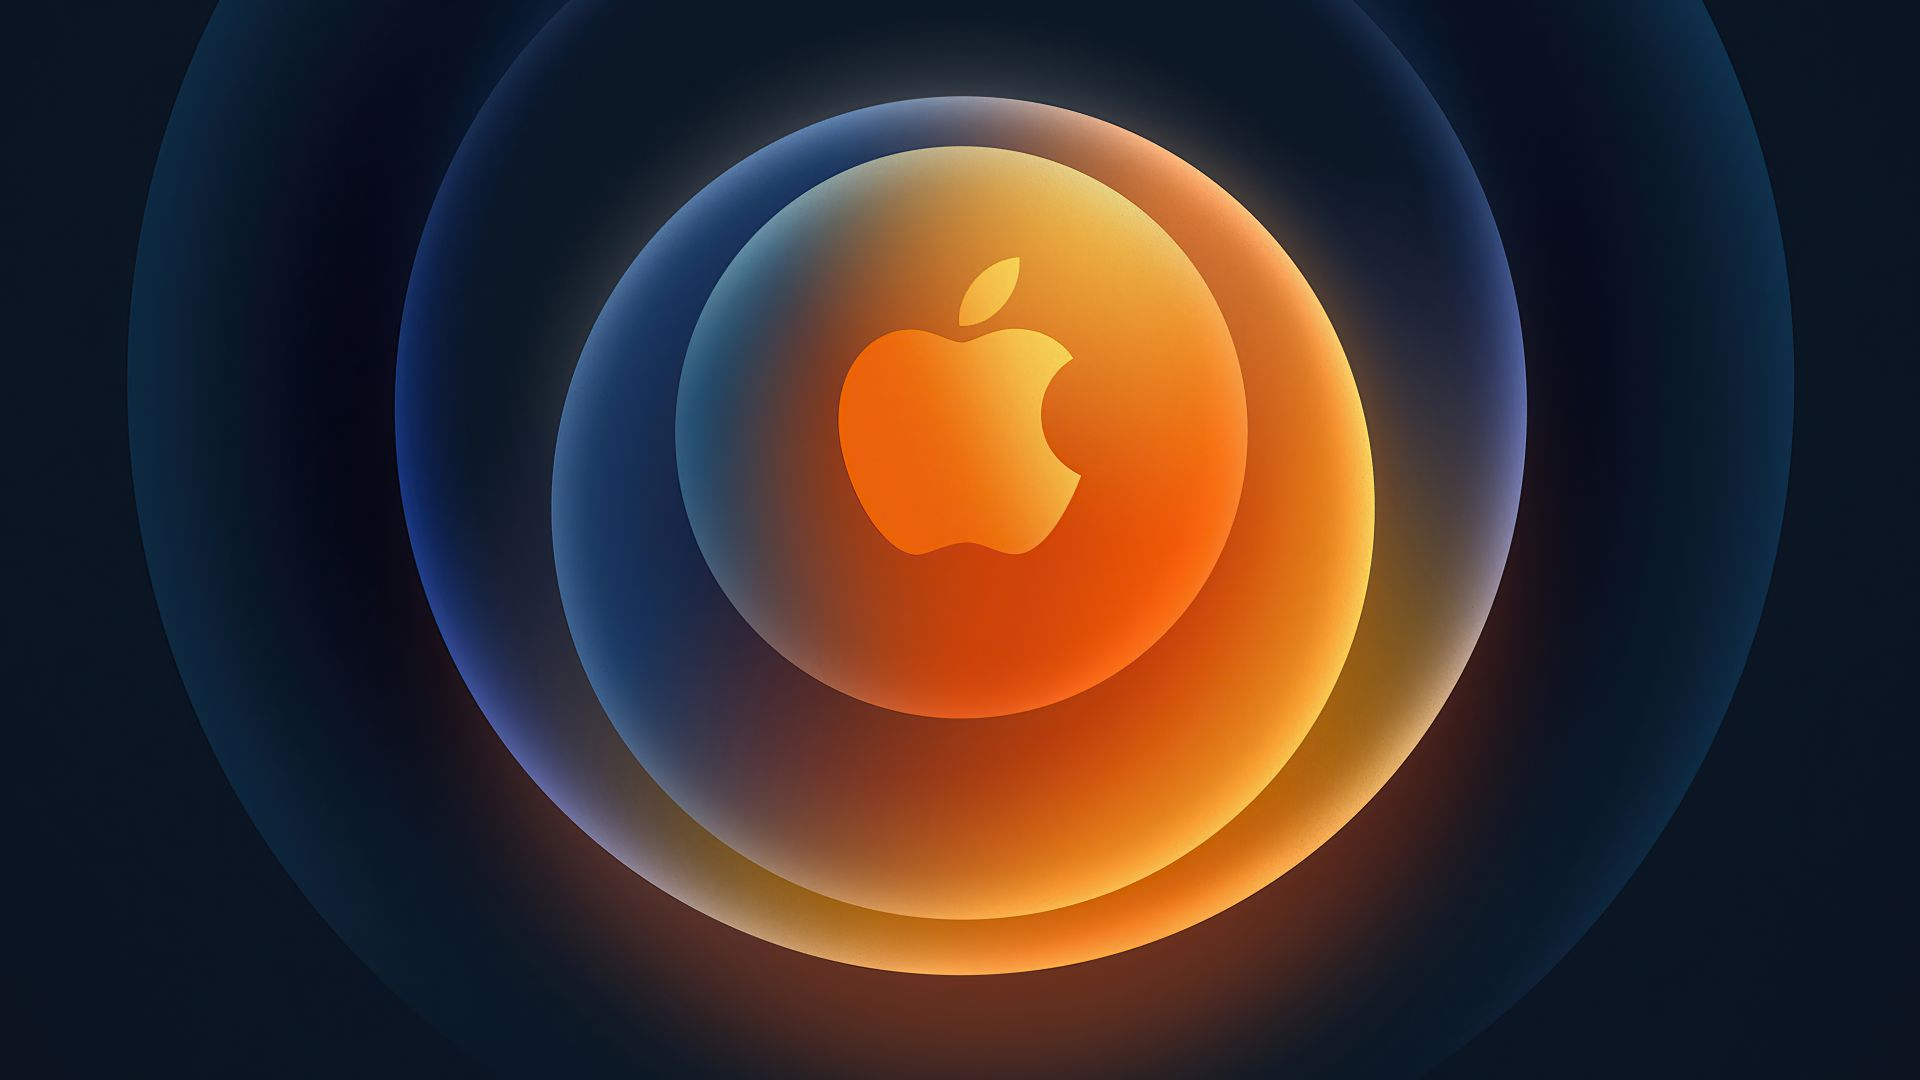 Apple October 2020 Event Wallpapers